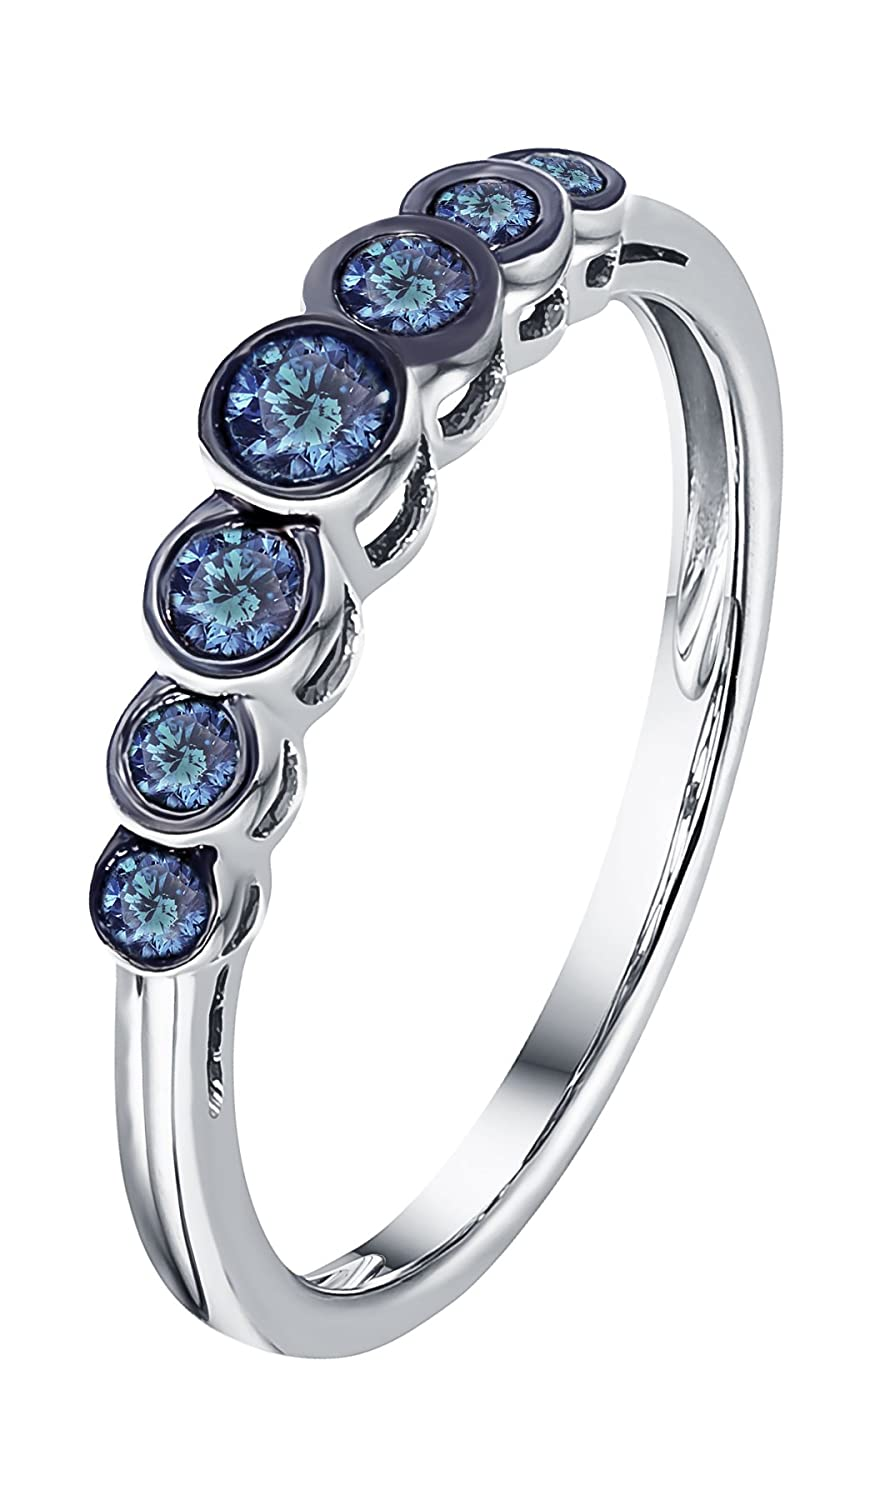 Prism Jewel 0.23Ct Round Cut Blue Diamond Bezel Set 7 Stone Ring Crafted In 10k Gold